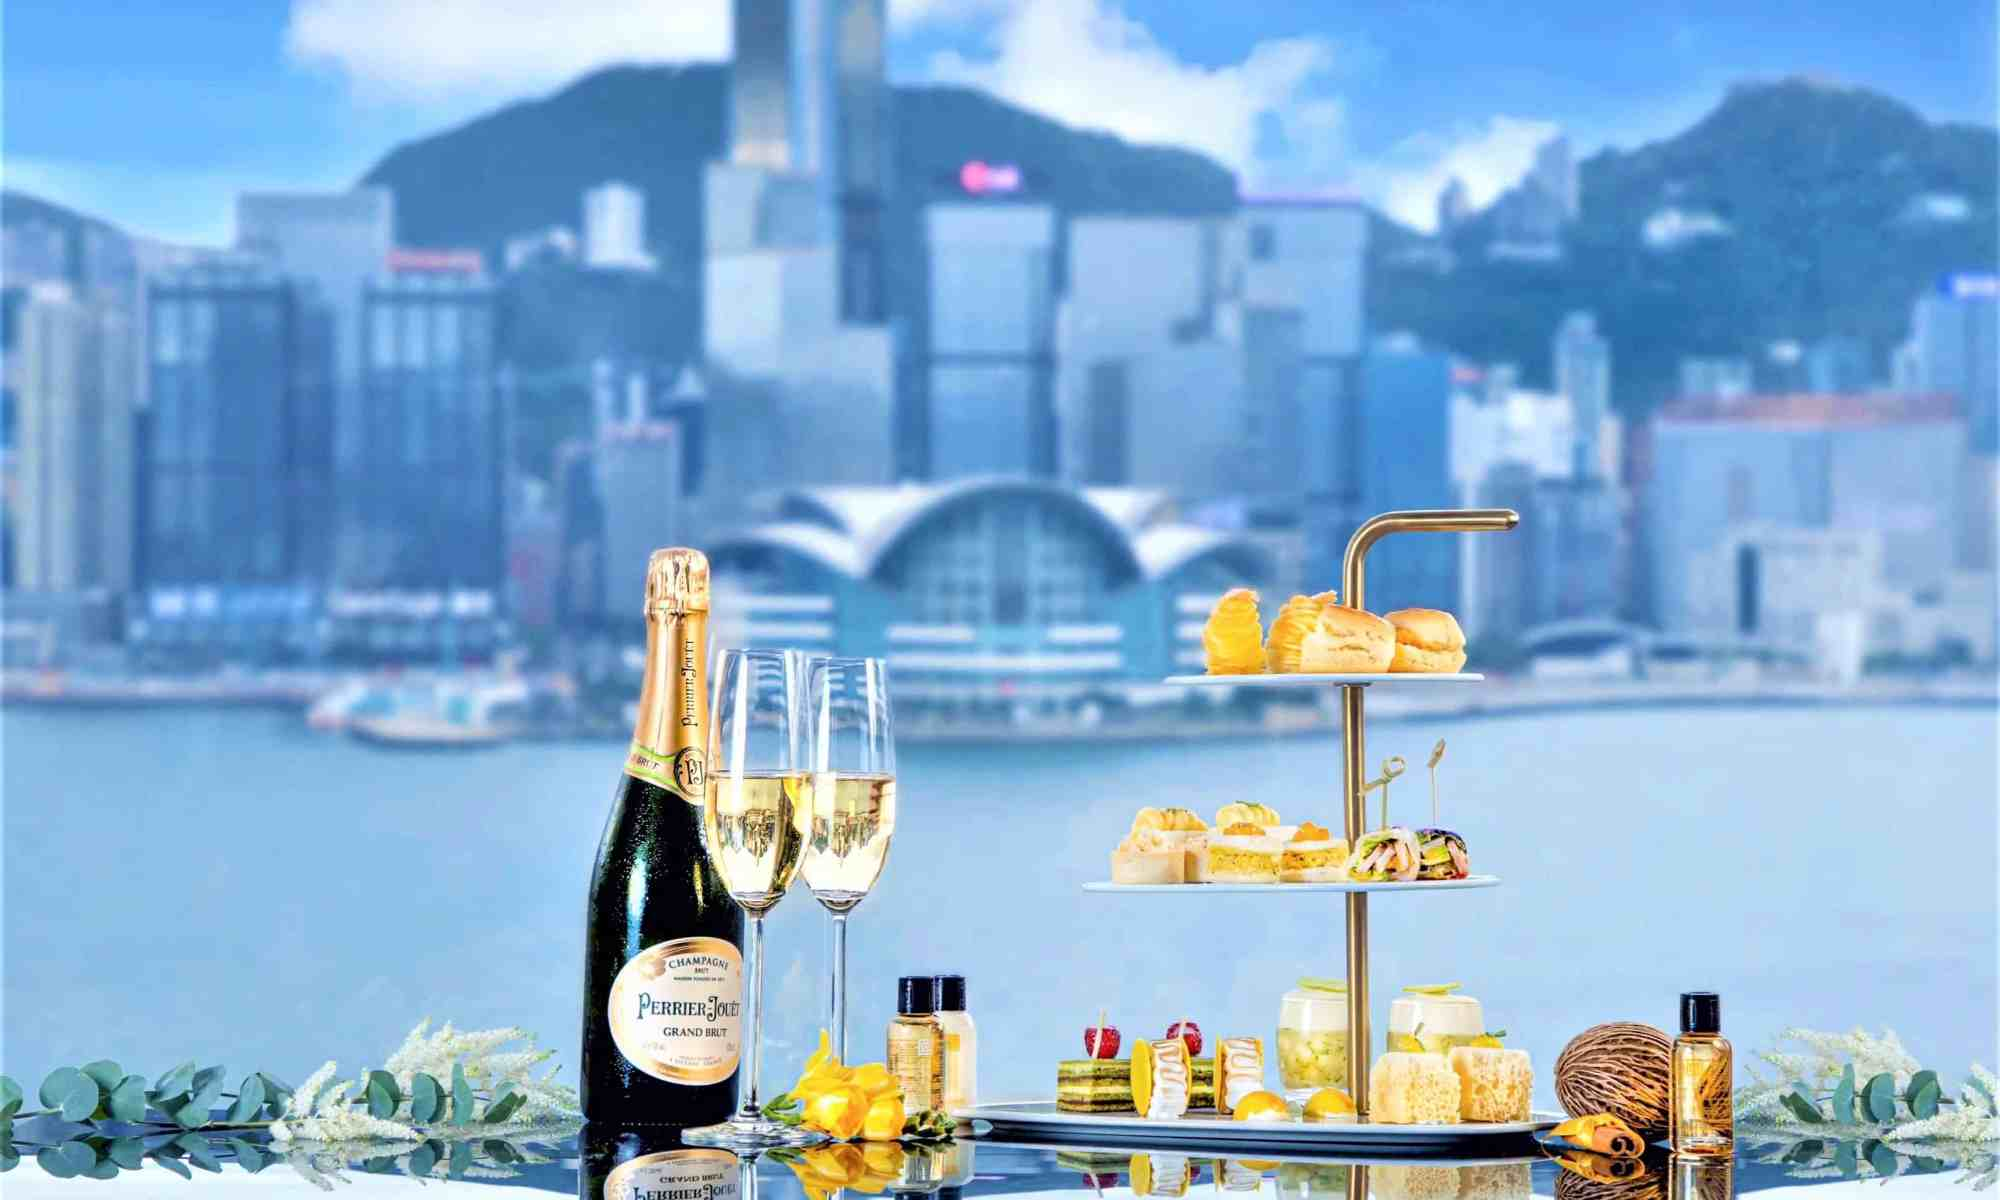 afternoont-tea-with-champagne-at-sheraton-hotel-in-hong-kong